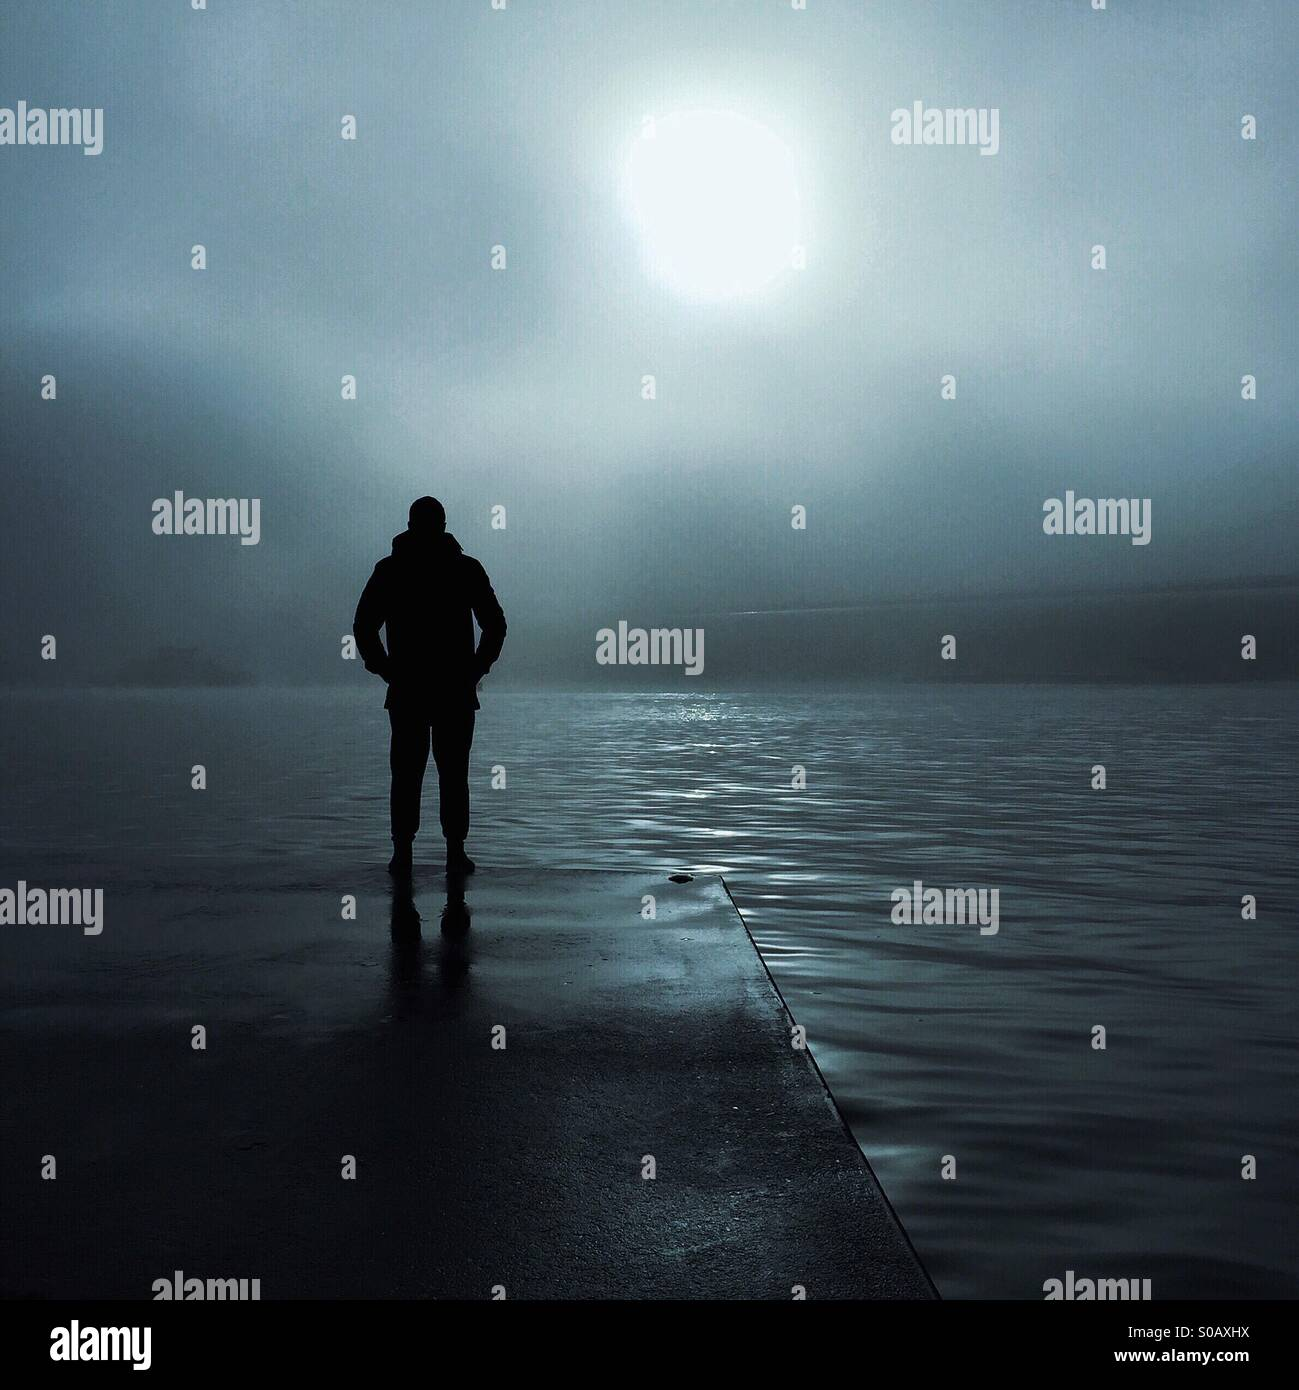 Night Watch - Stock Image